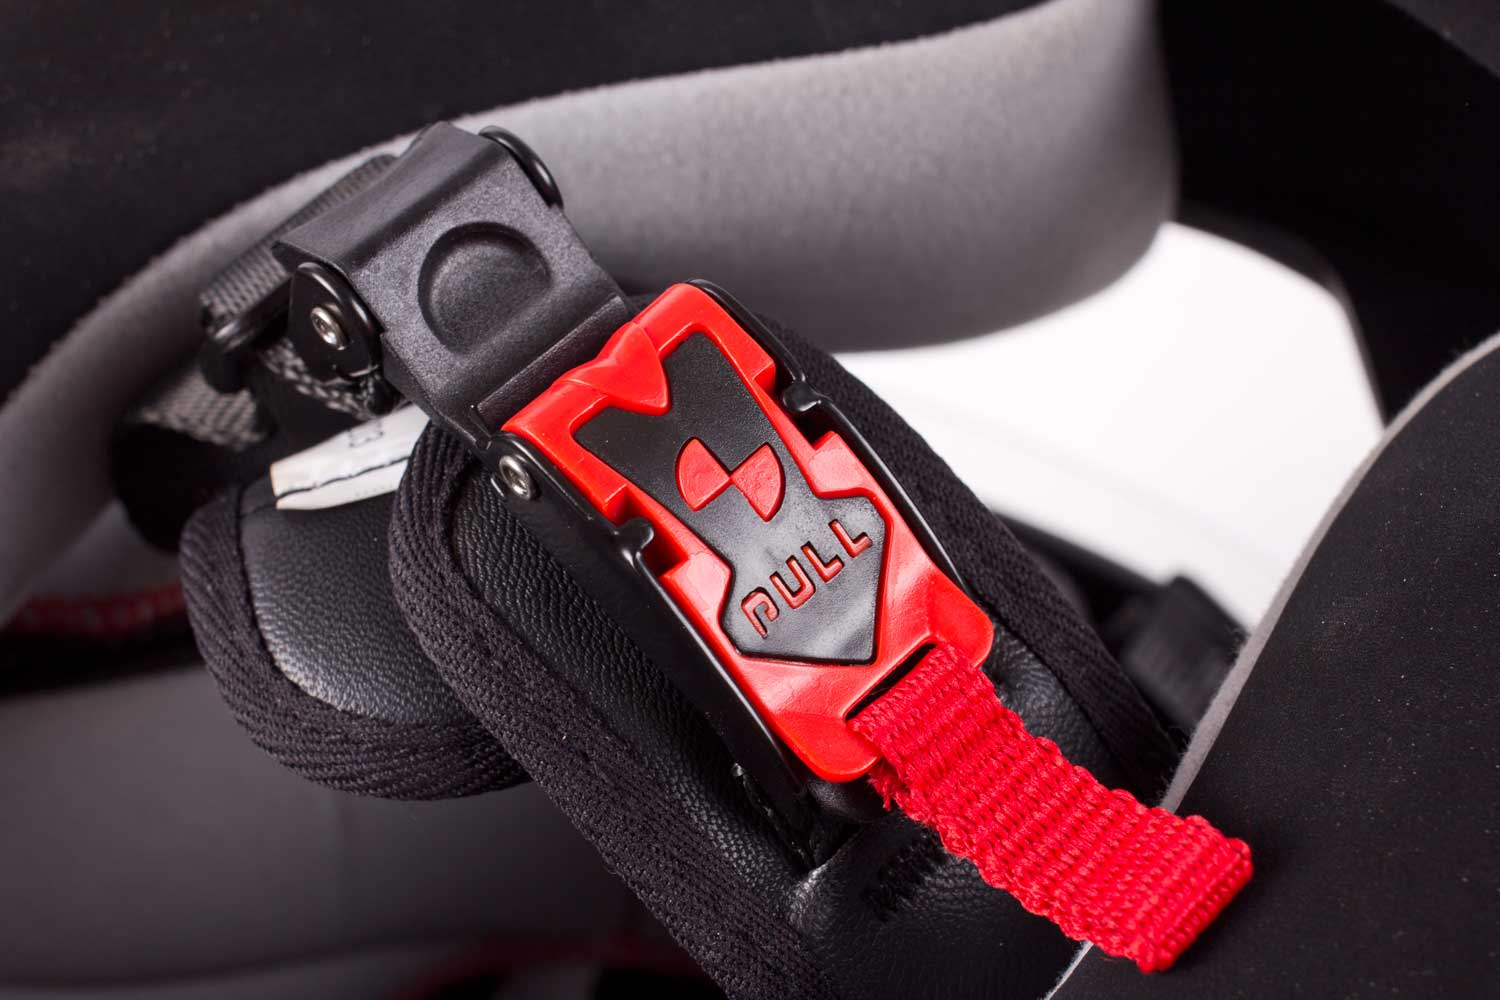 Ratchet fastener is quicker than a D-ring, and more adjustable than a buckle